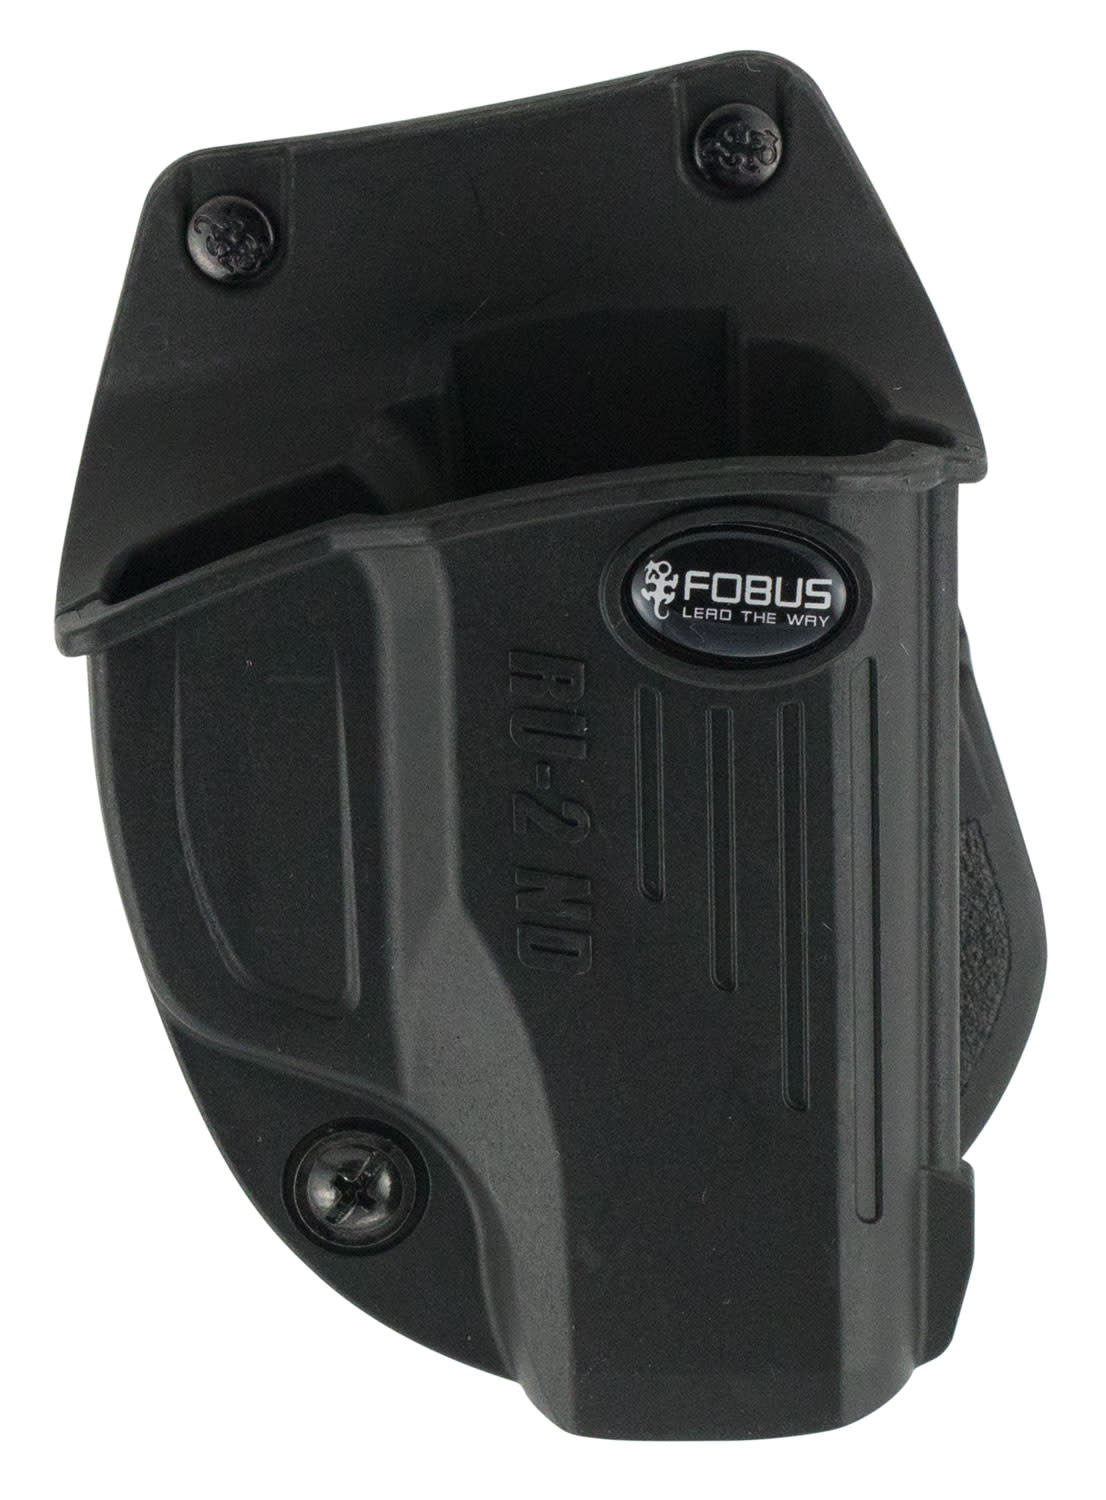 Fobus Evolution Paddle Holster - S&W M&P